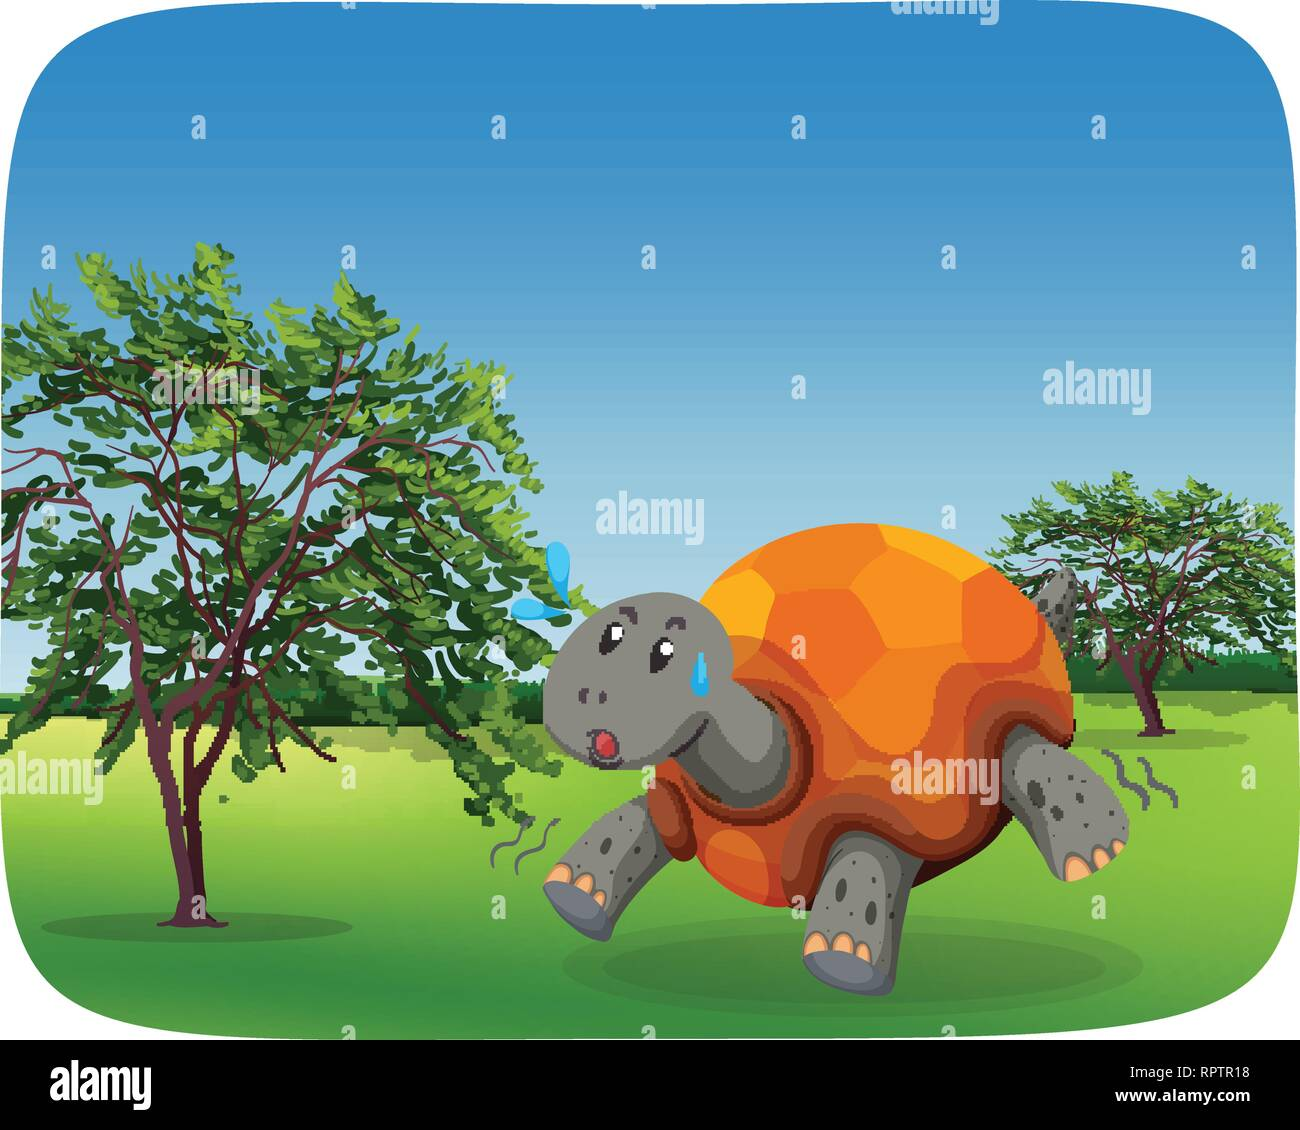 Running turtle in nature scene illustration - Stock Vector